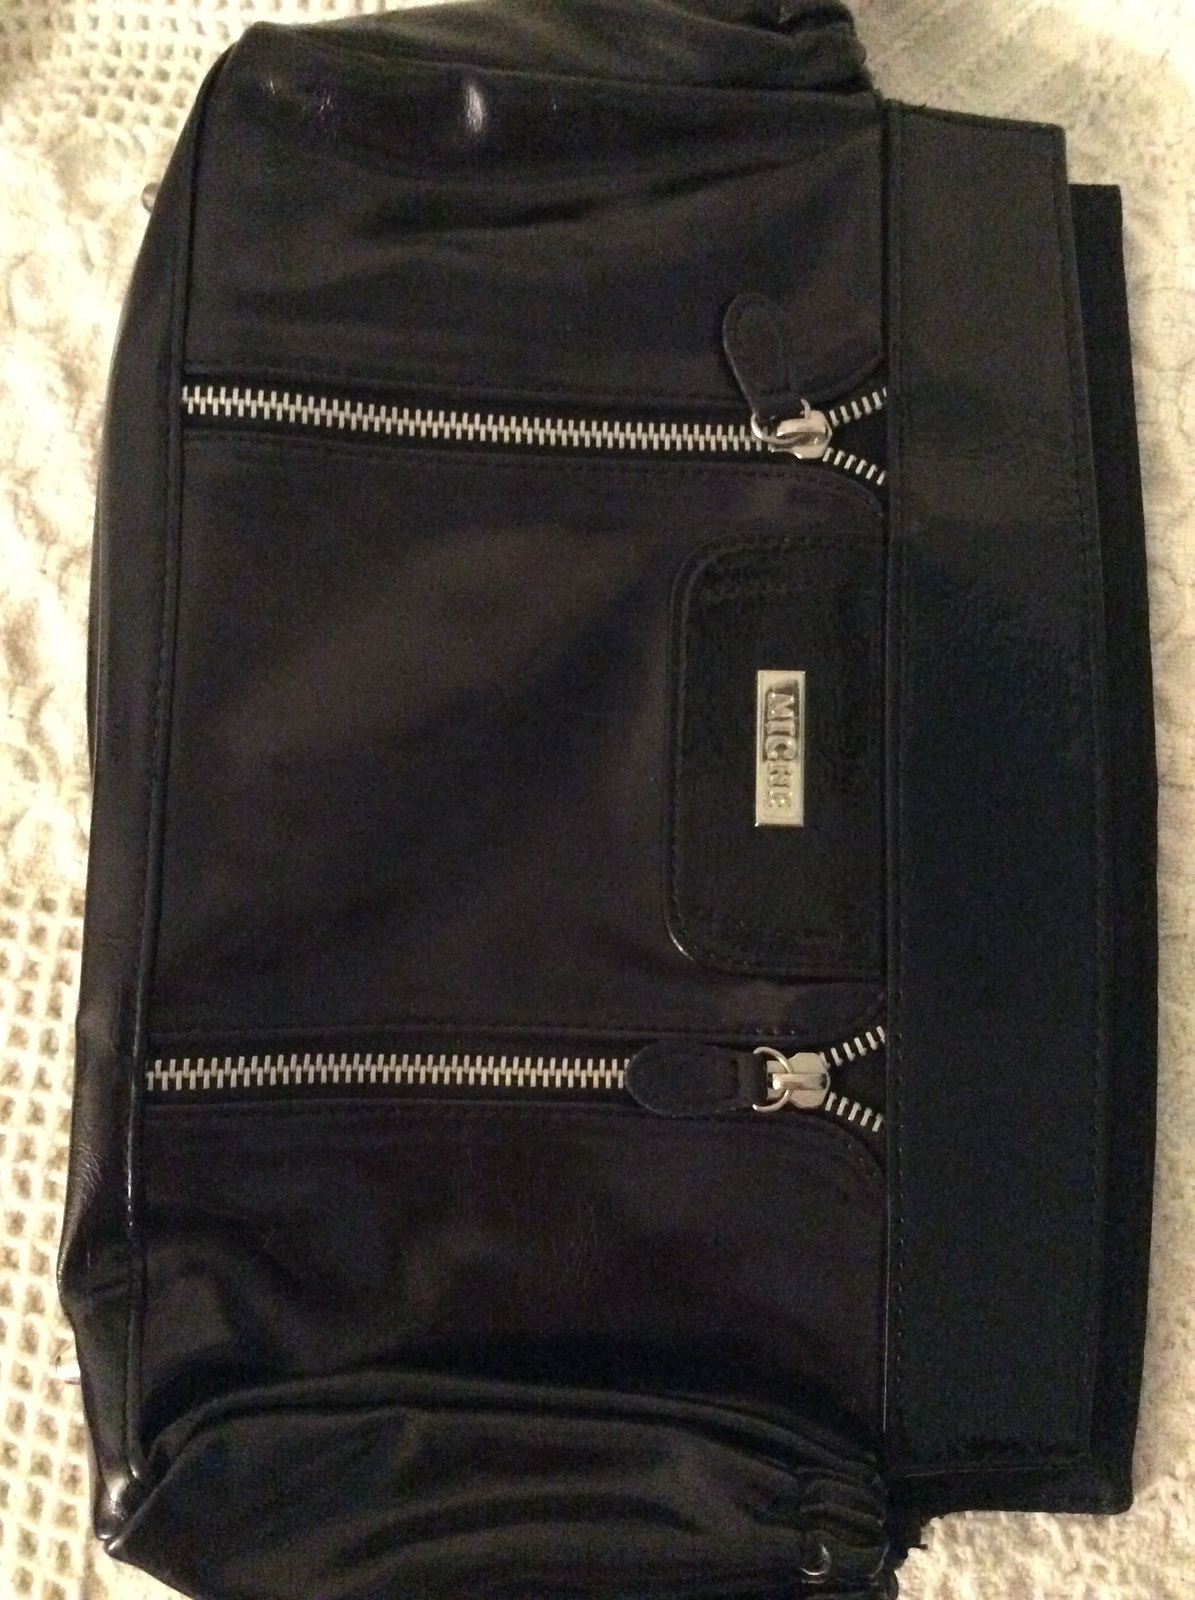 Retired Miche Full wraparound Classic Shell BELLE in Black with Zippers